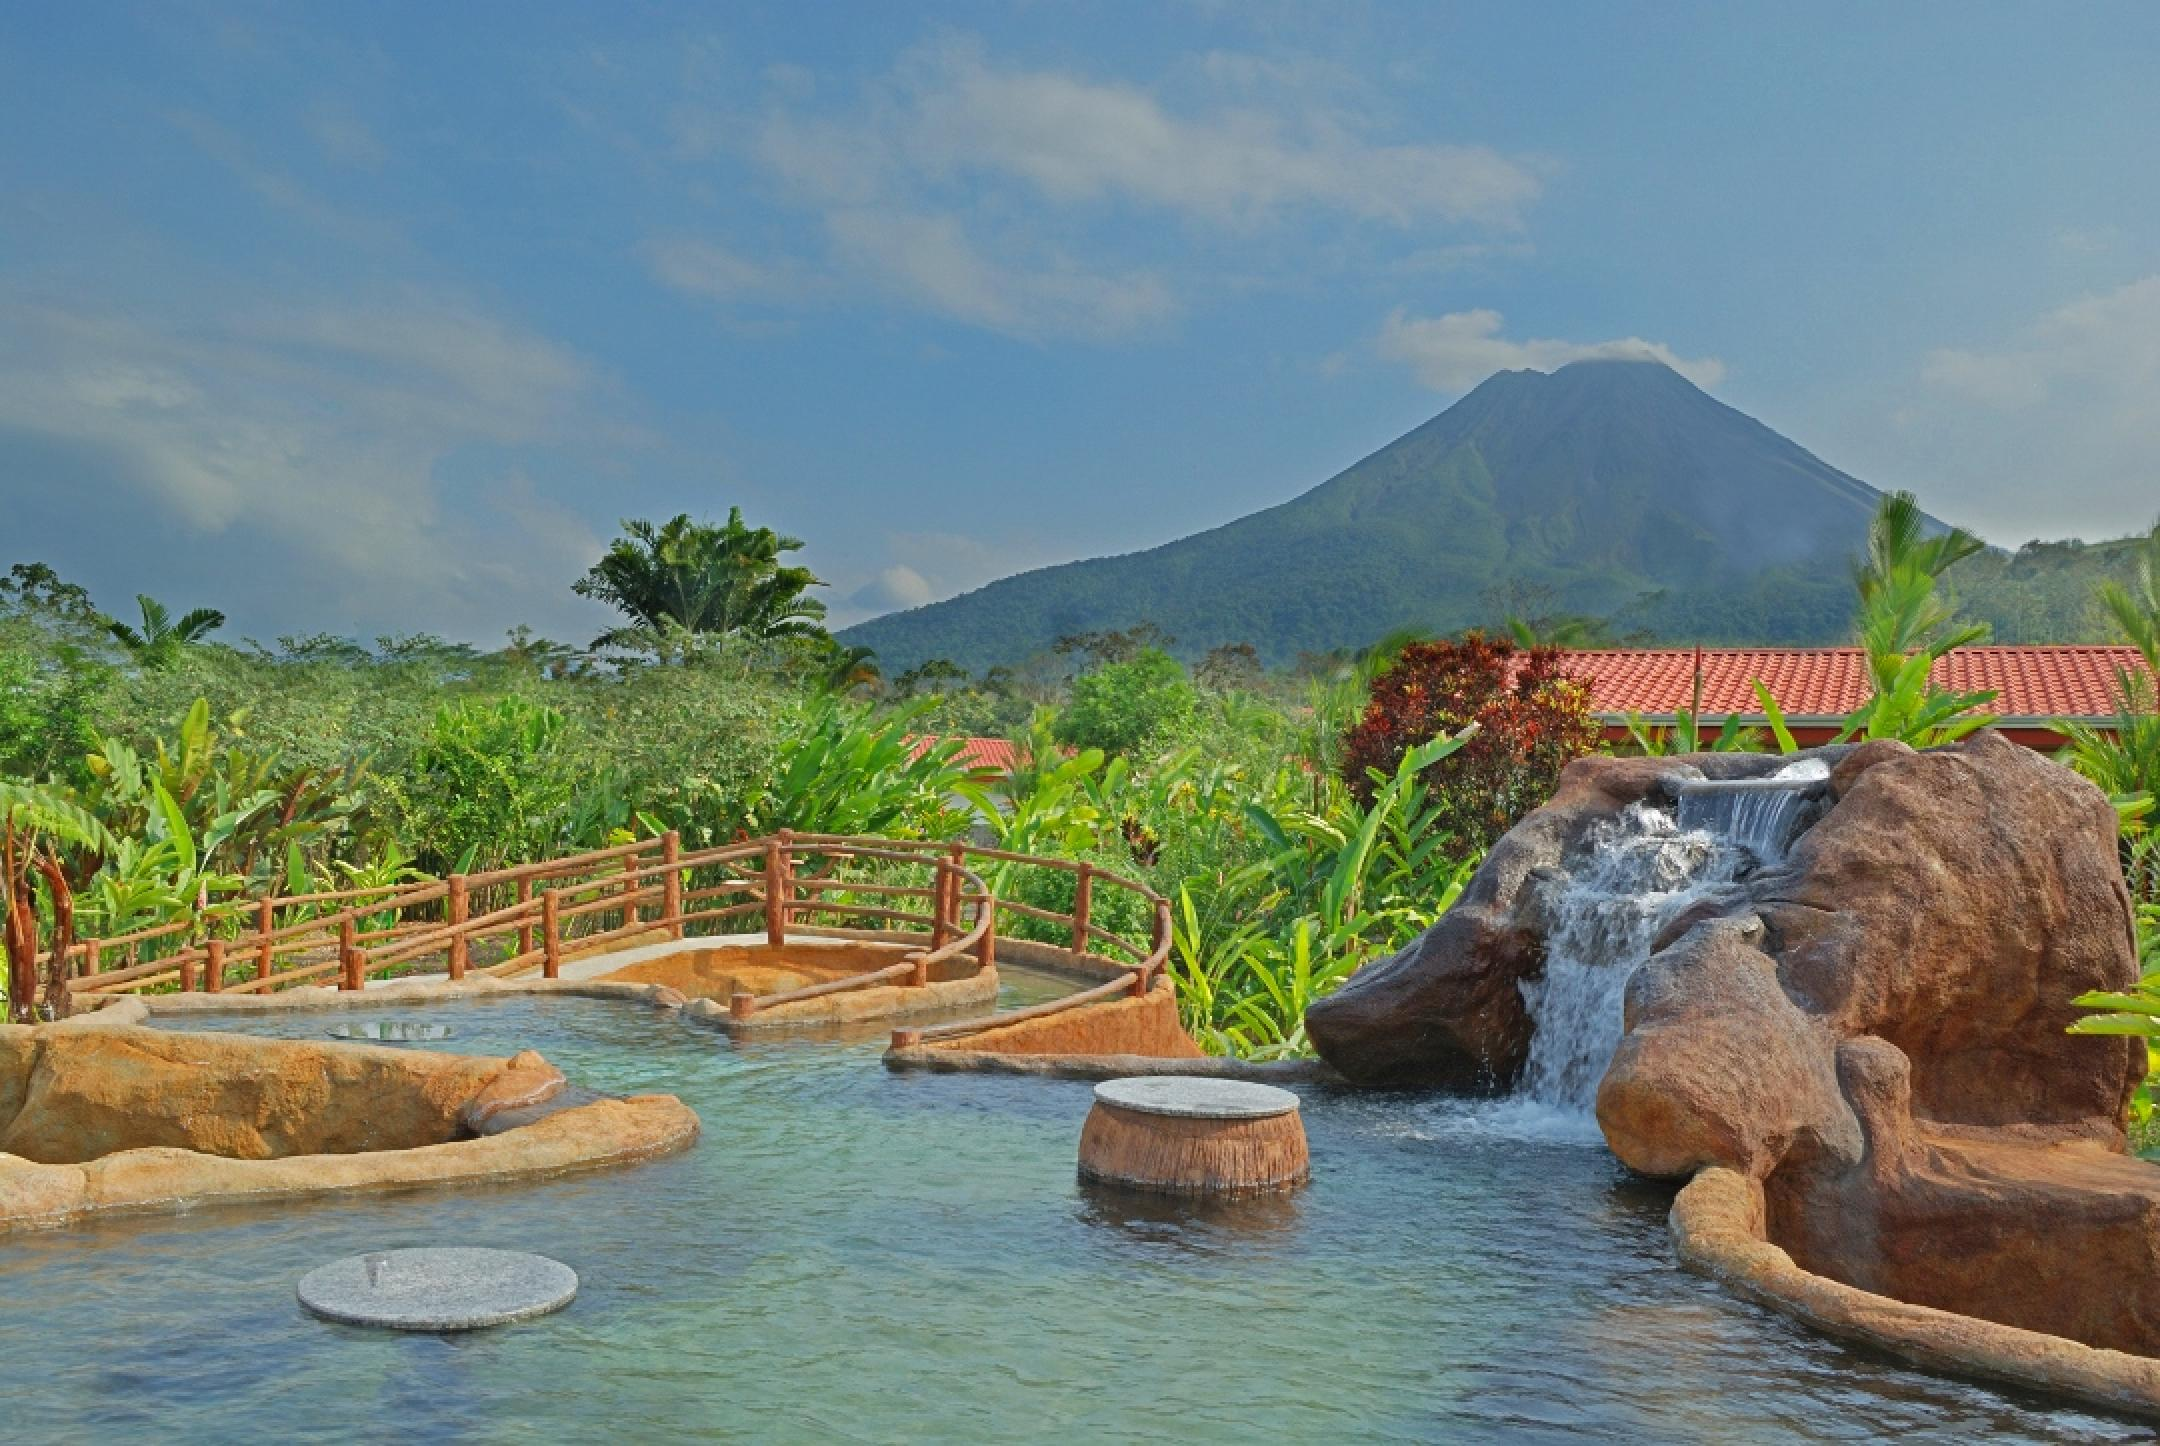 Volcano Lodge Hotel and Thermal Experience